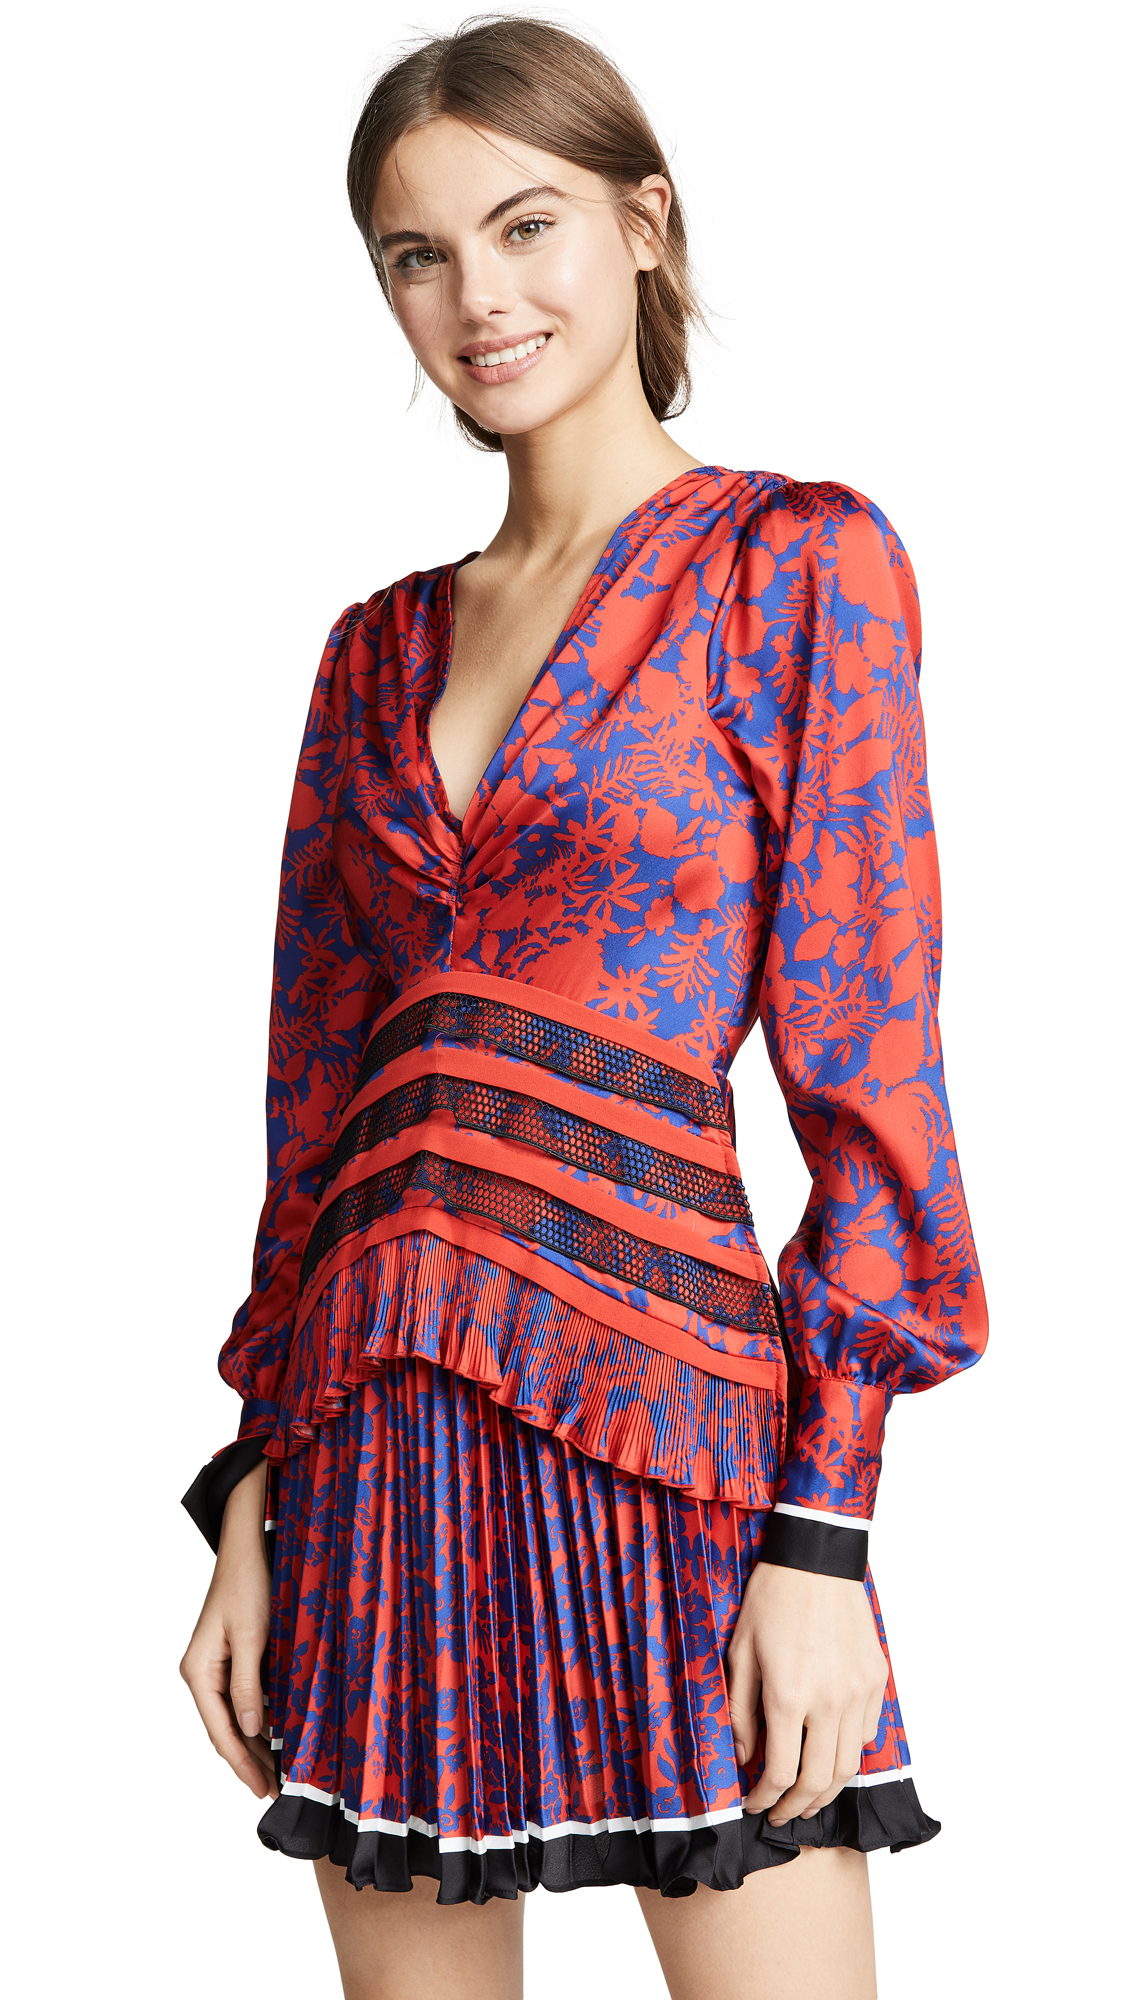 Self Portrait Printed Dress - Red/Blue